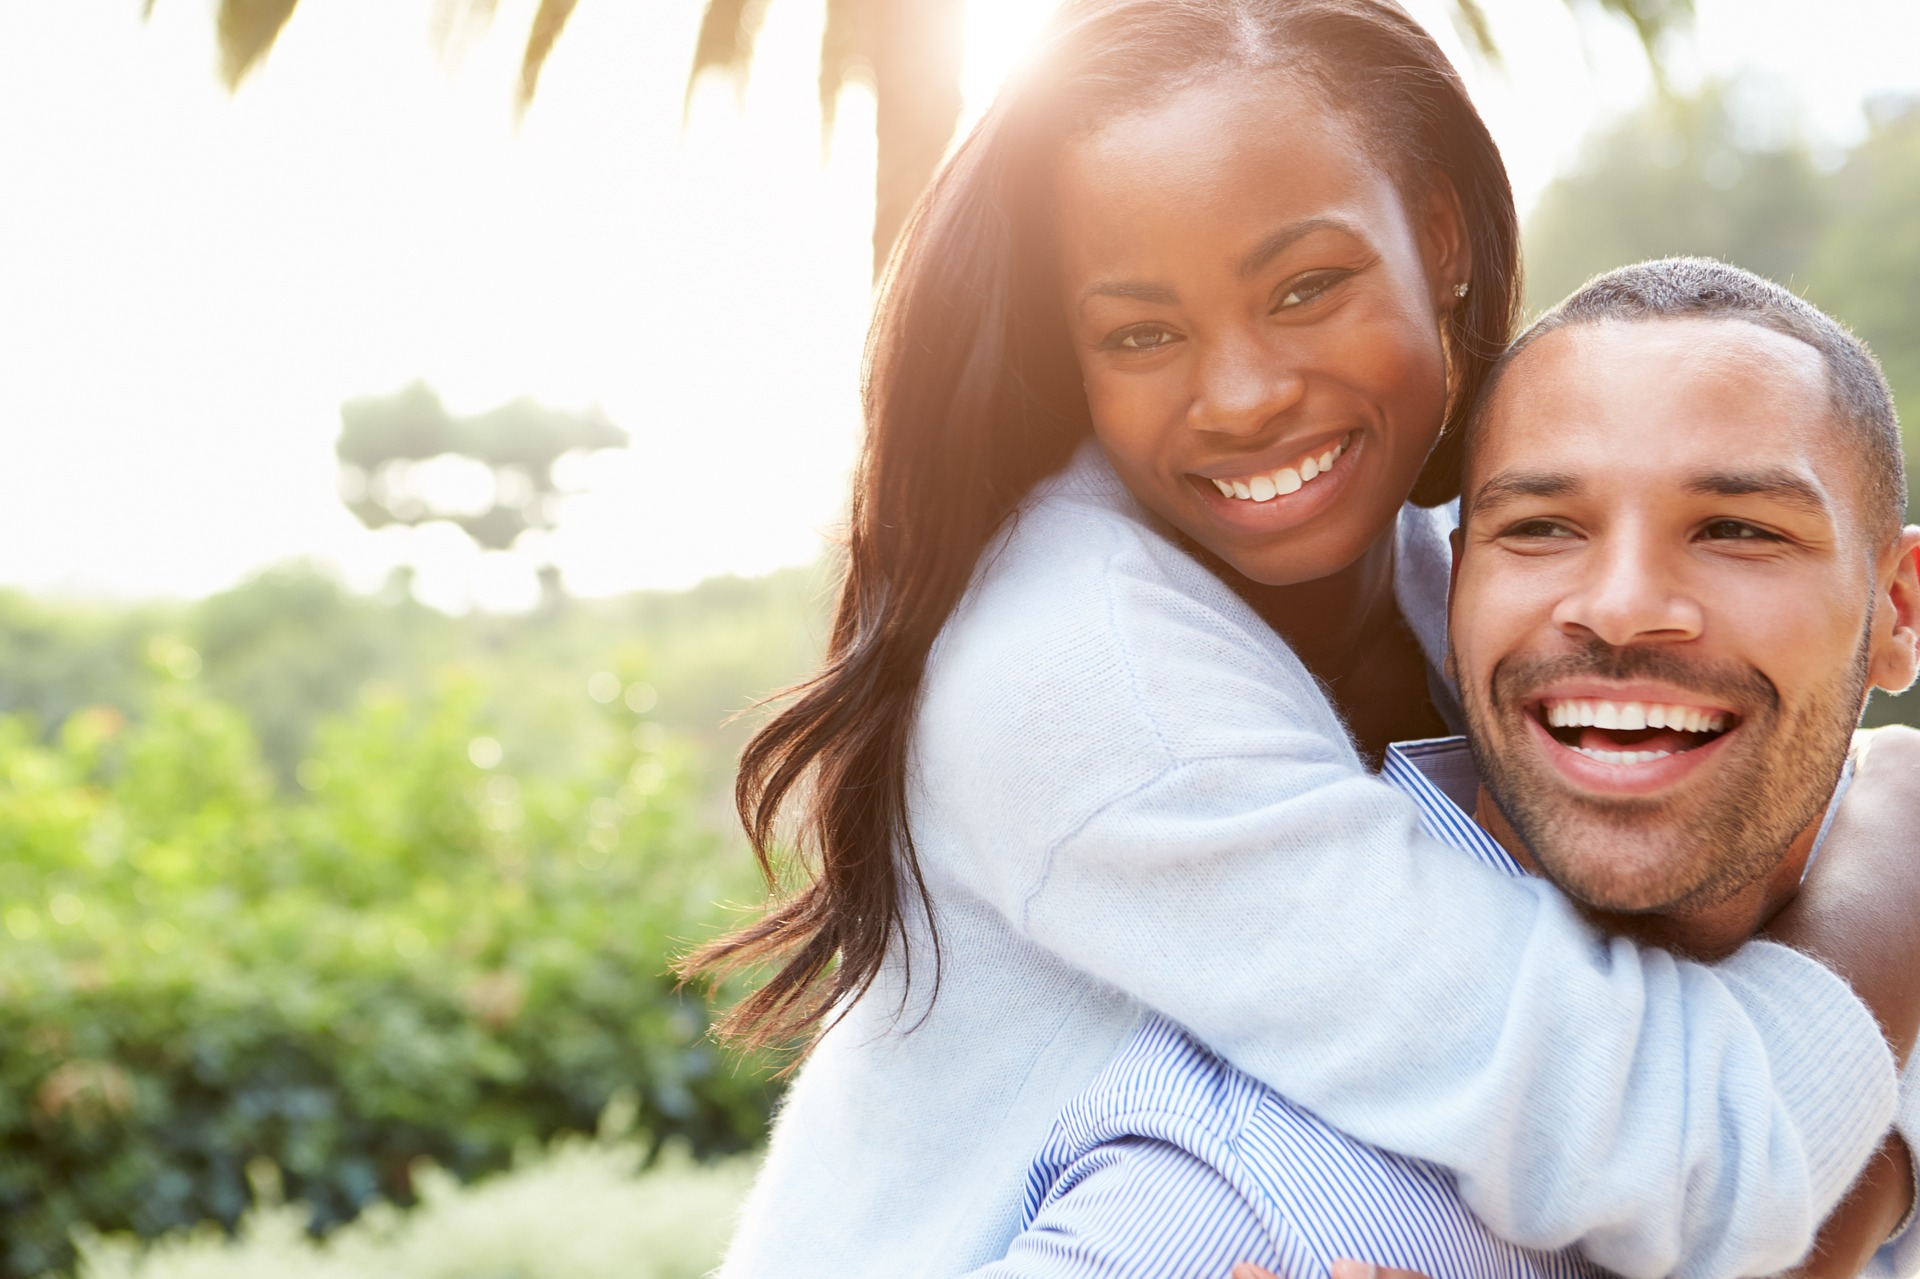 What things you should not do on your first date (part – 2)